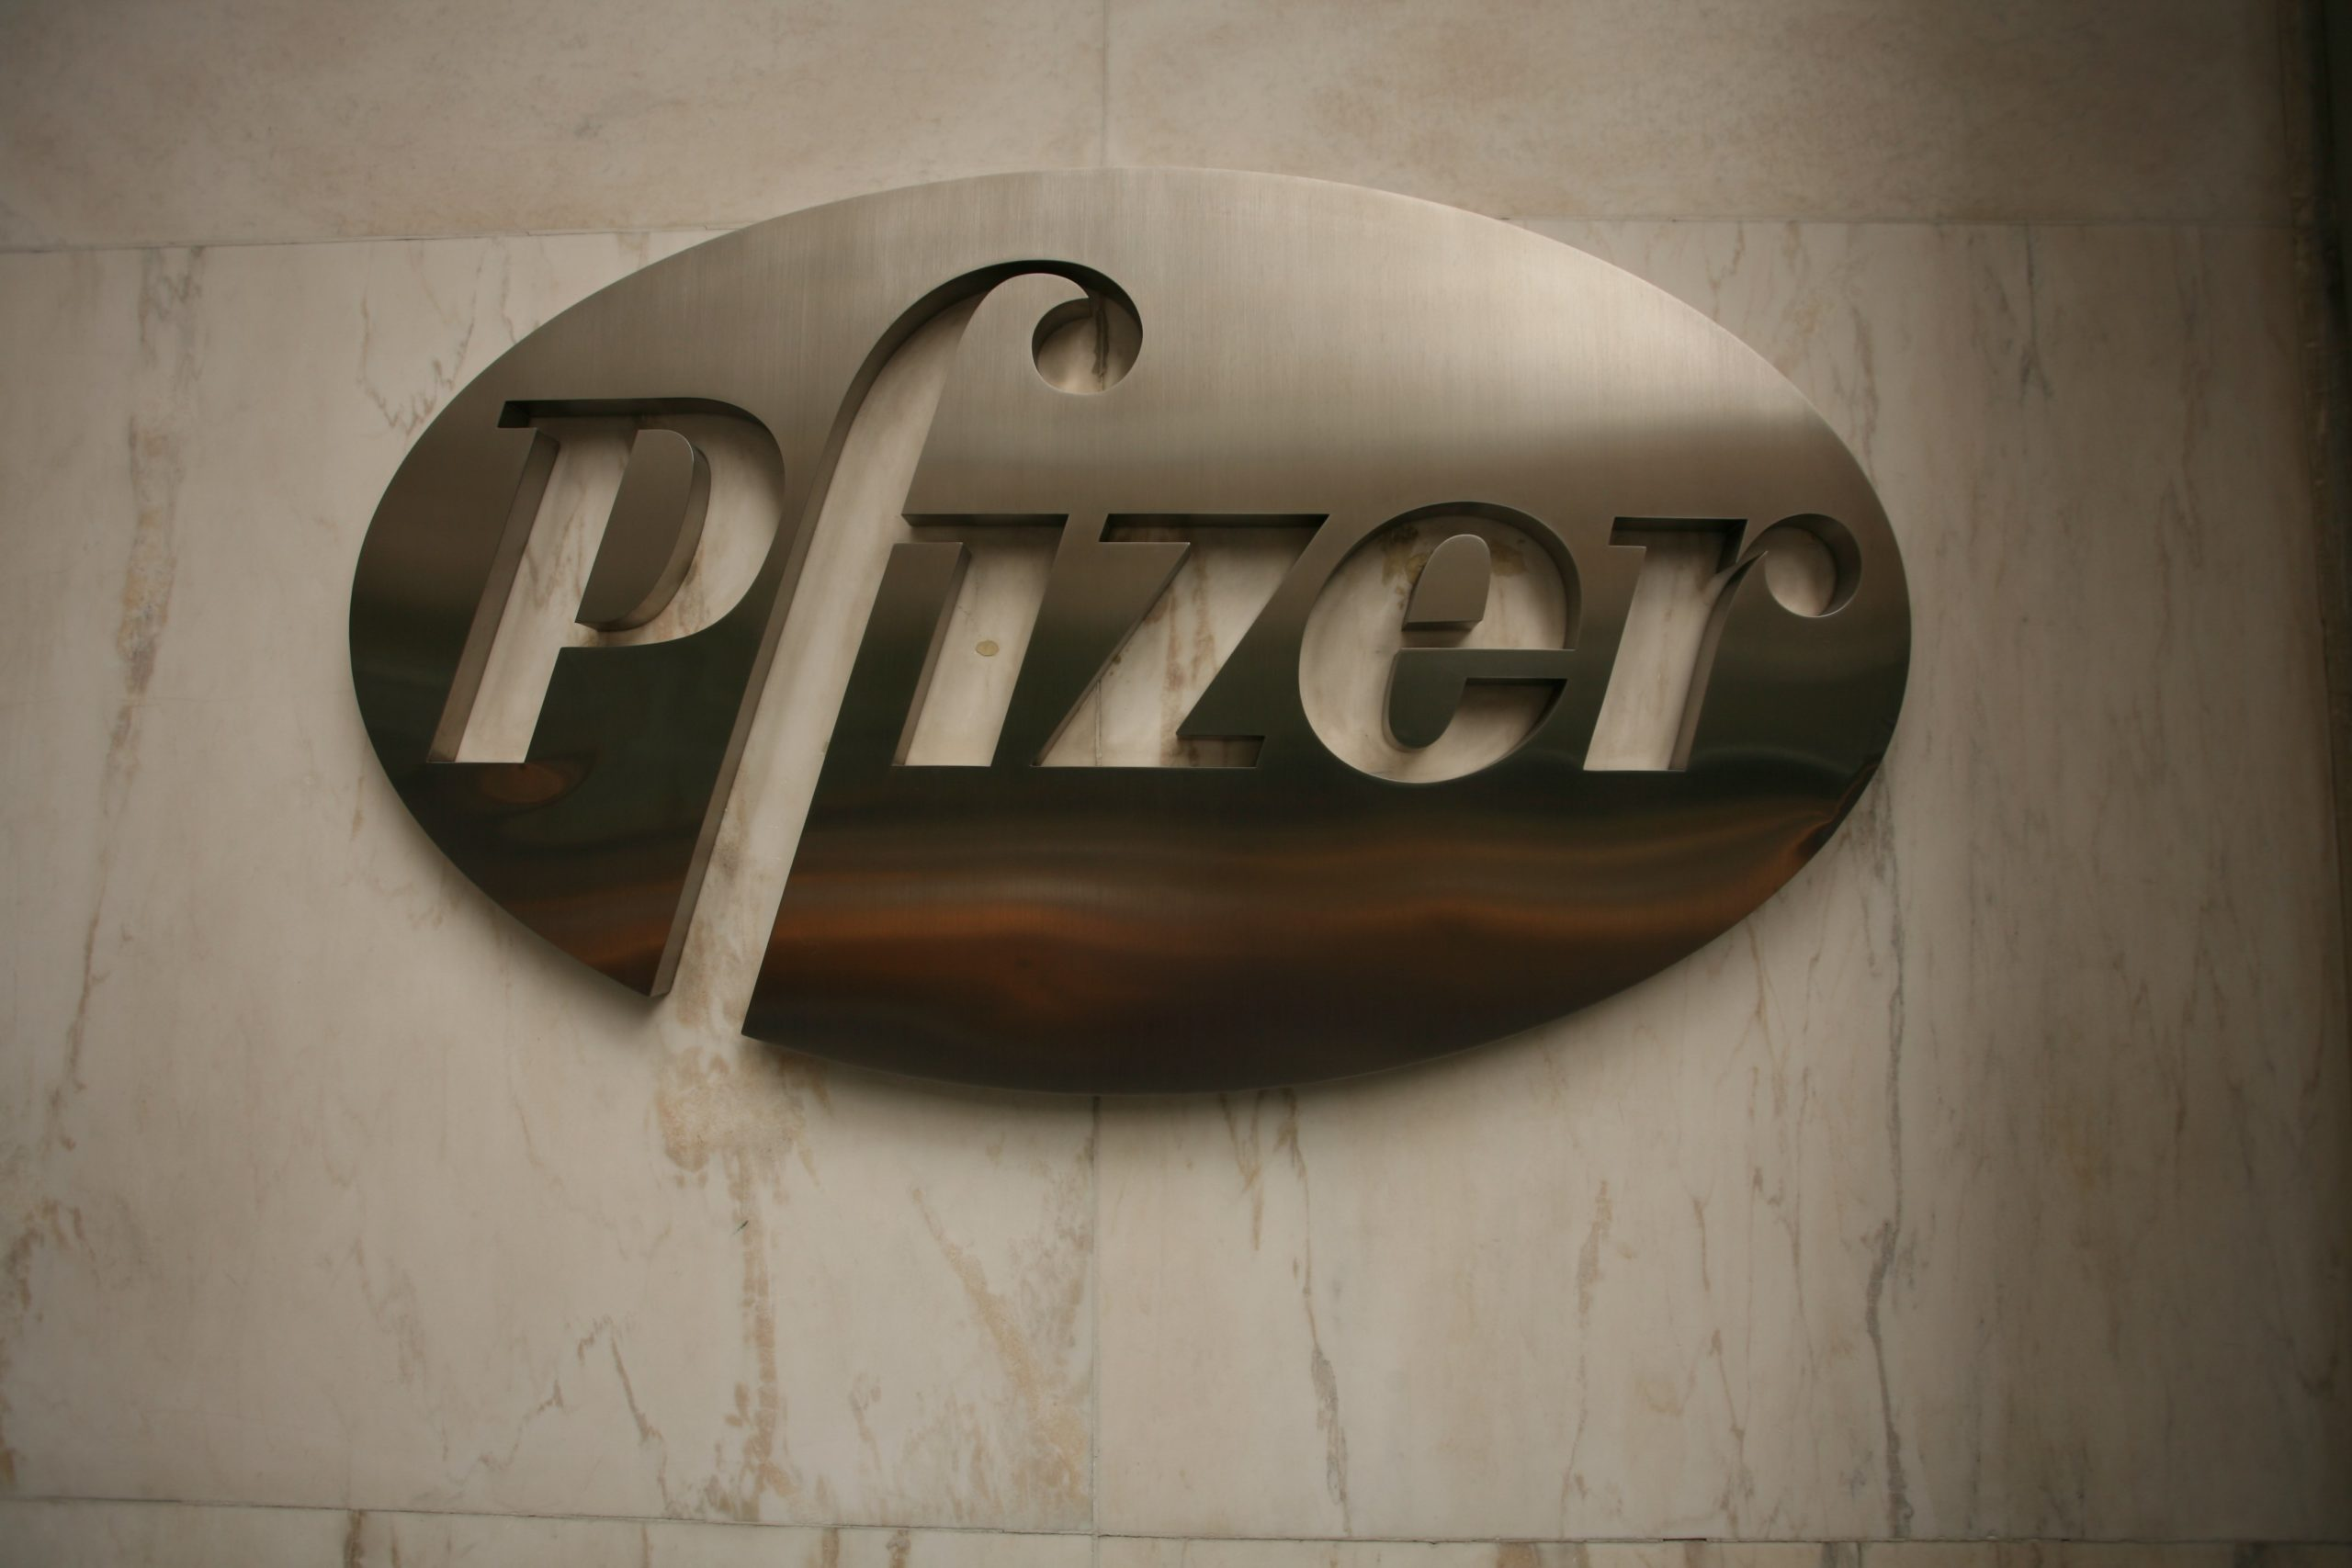 Pfizer Proposes Expanding Covid 19 Vaccine Trial To Include More Diversity As Race For A Vaccine Continues